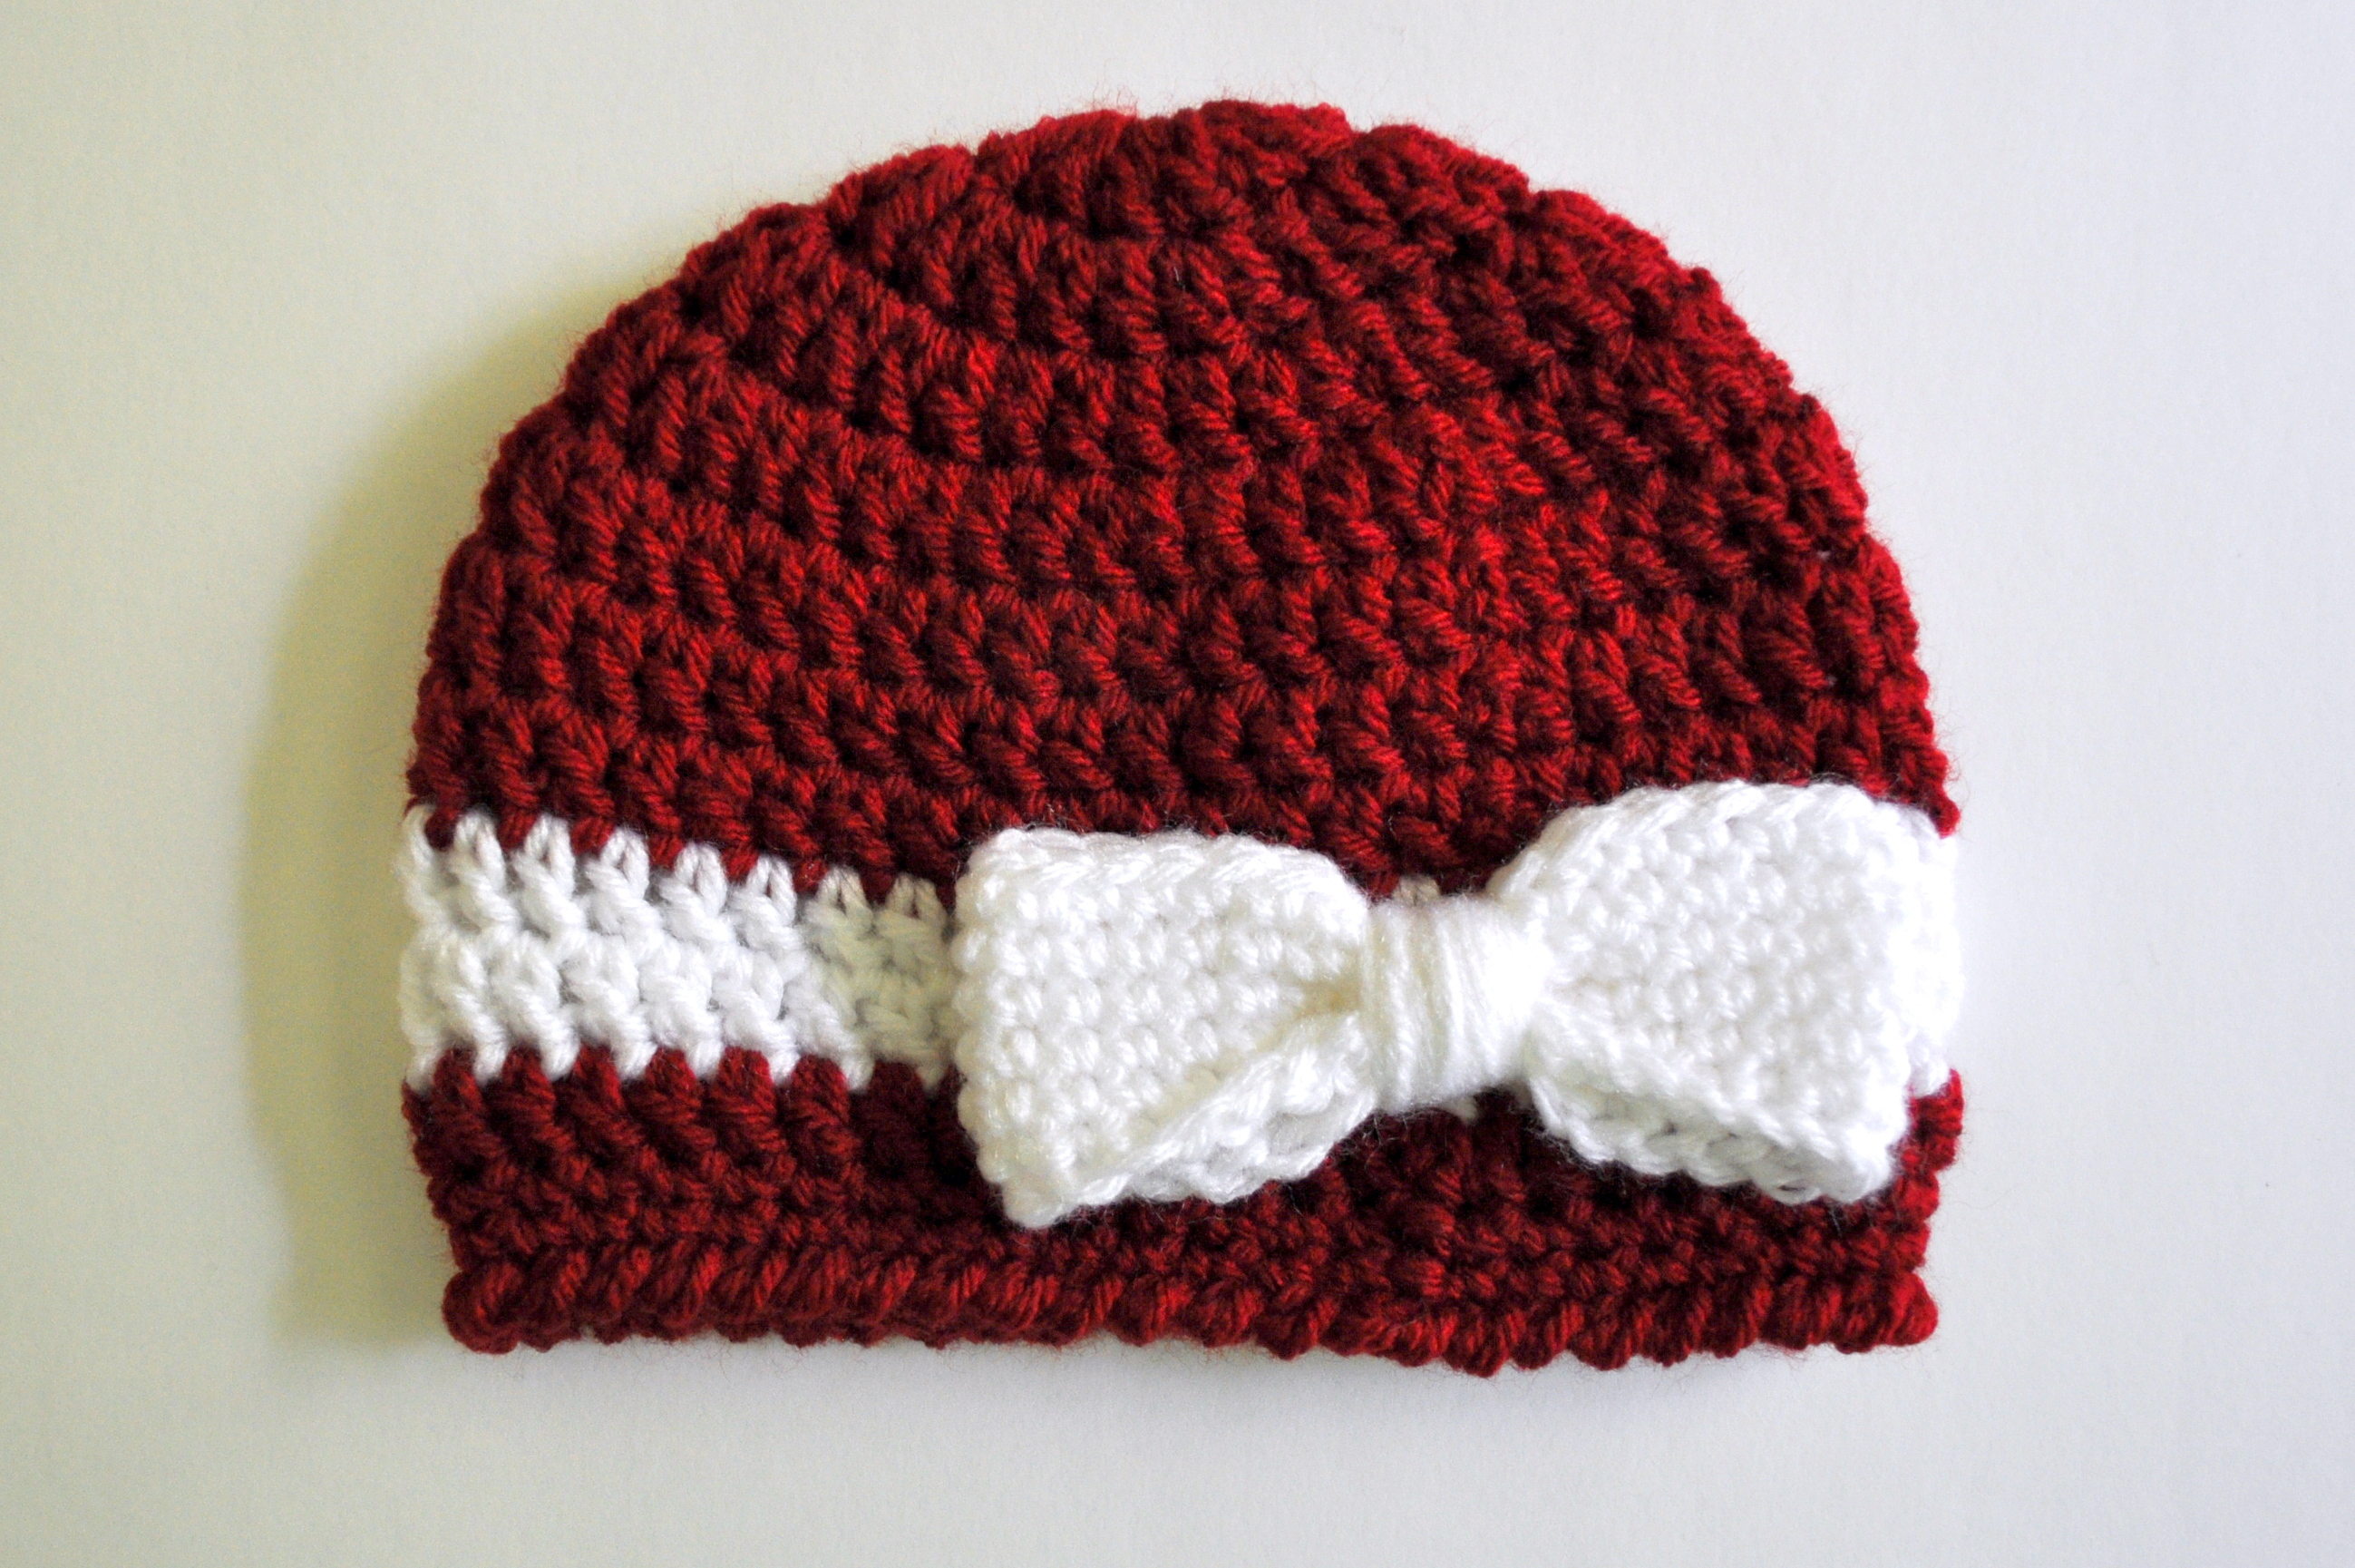 Crochet Patterns Hats For Toddlers : Free Pattern: Crochet Bow and Ribbon Baby Hat Classy Crochet